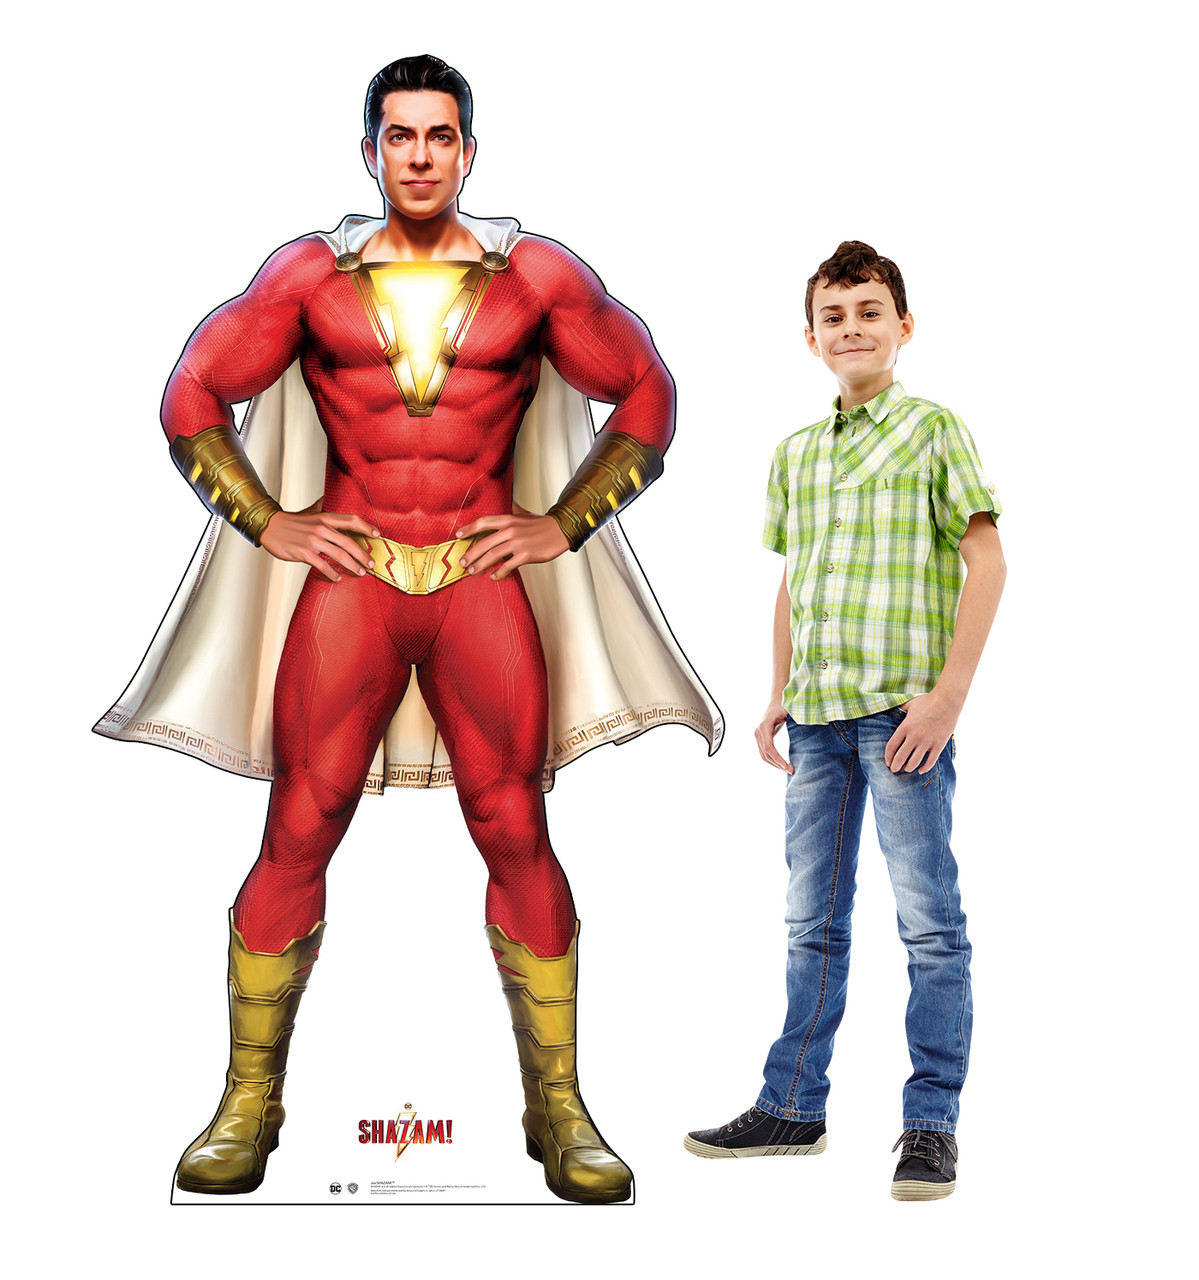 Life-size cardboard standee of the super hero Shazam! with model.